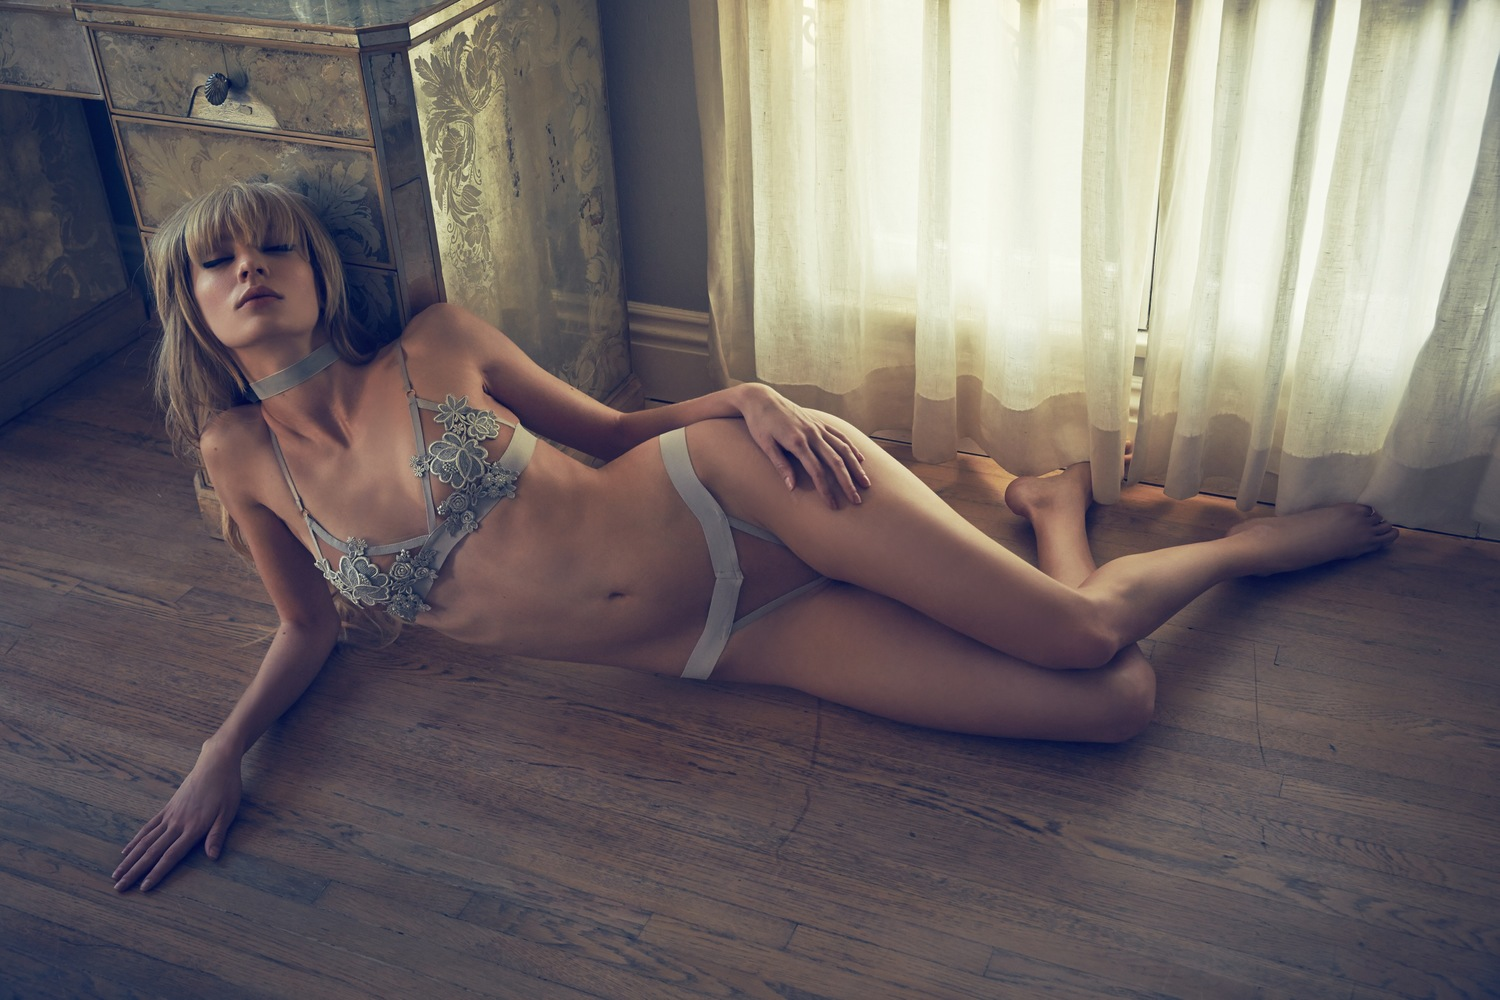 For Love & Lemons Skivvies Dream Girl ss 2015 lingerie нижнее белье